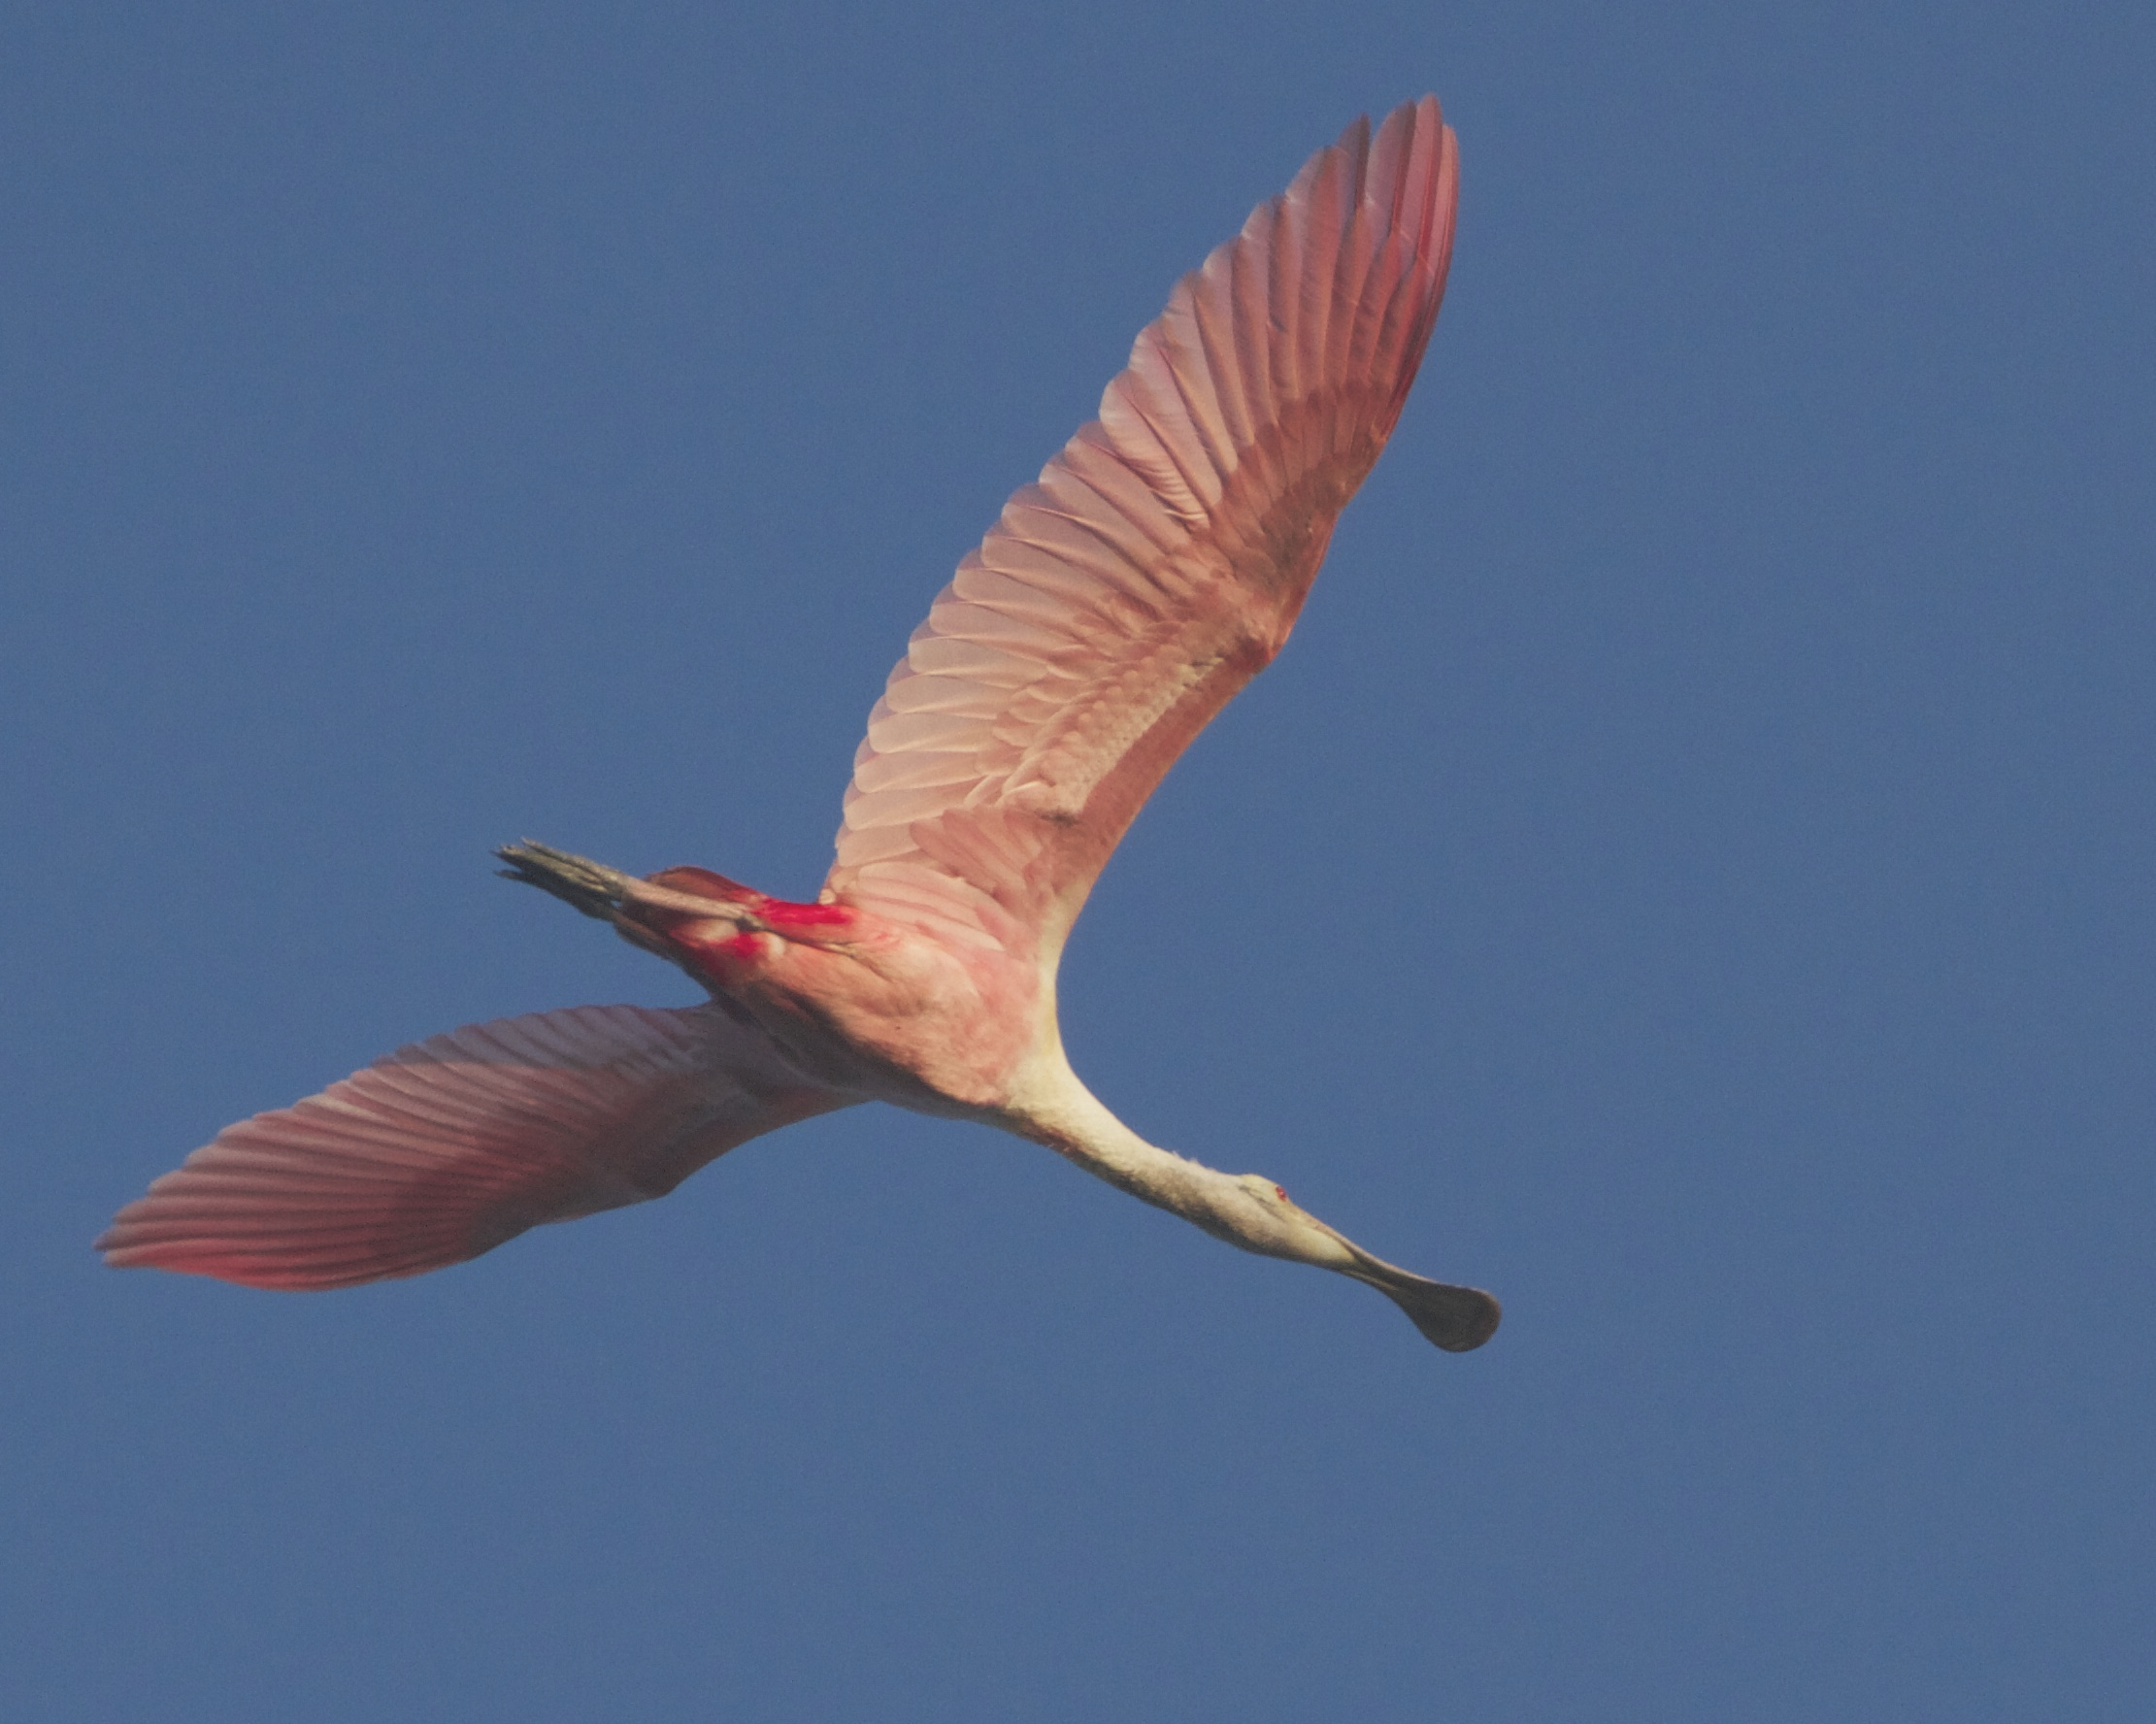 Broad Pink wings of the Roseate Spoonbill soar overhead.